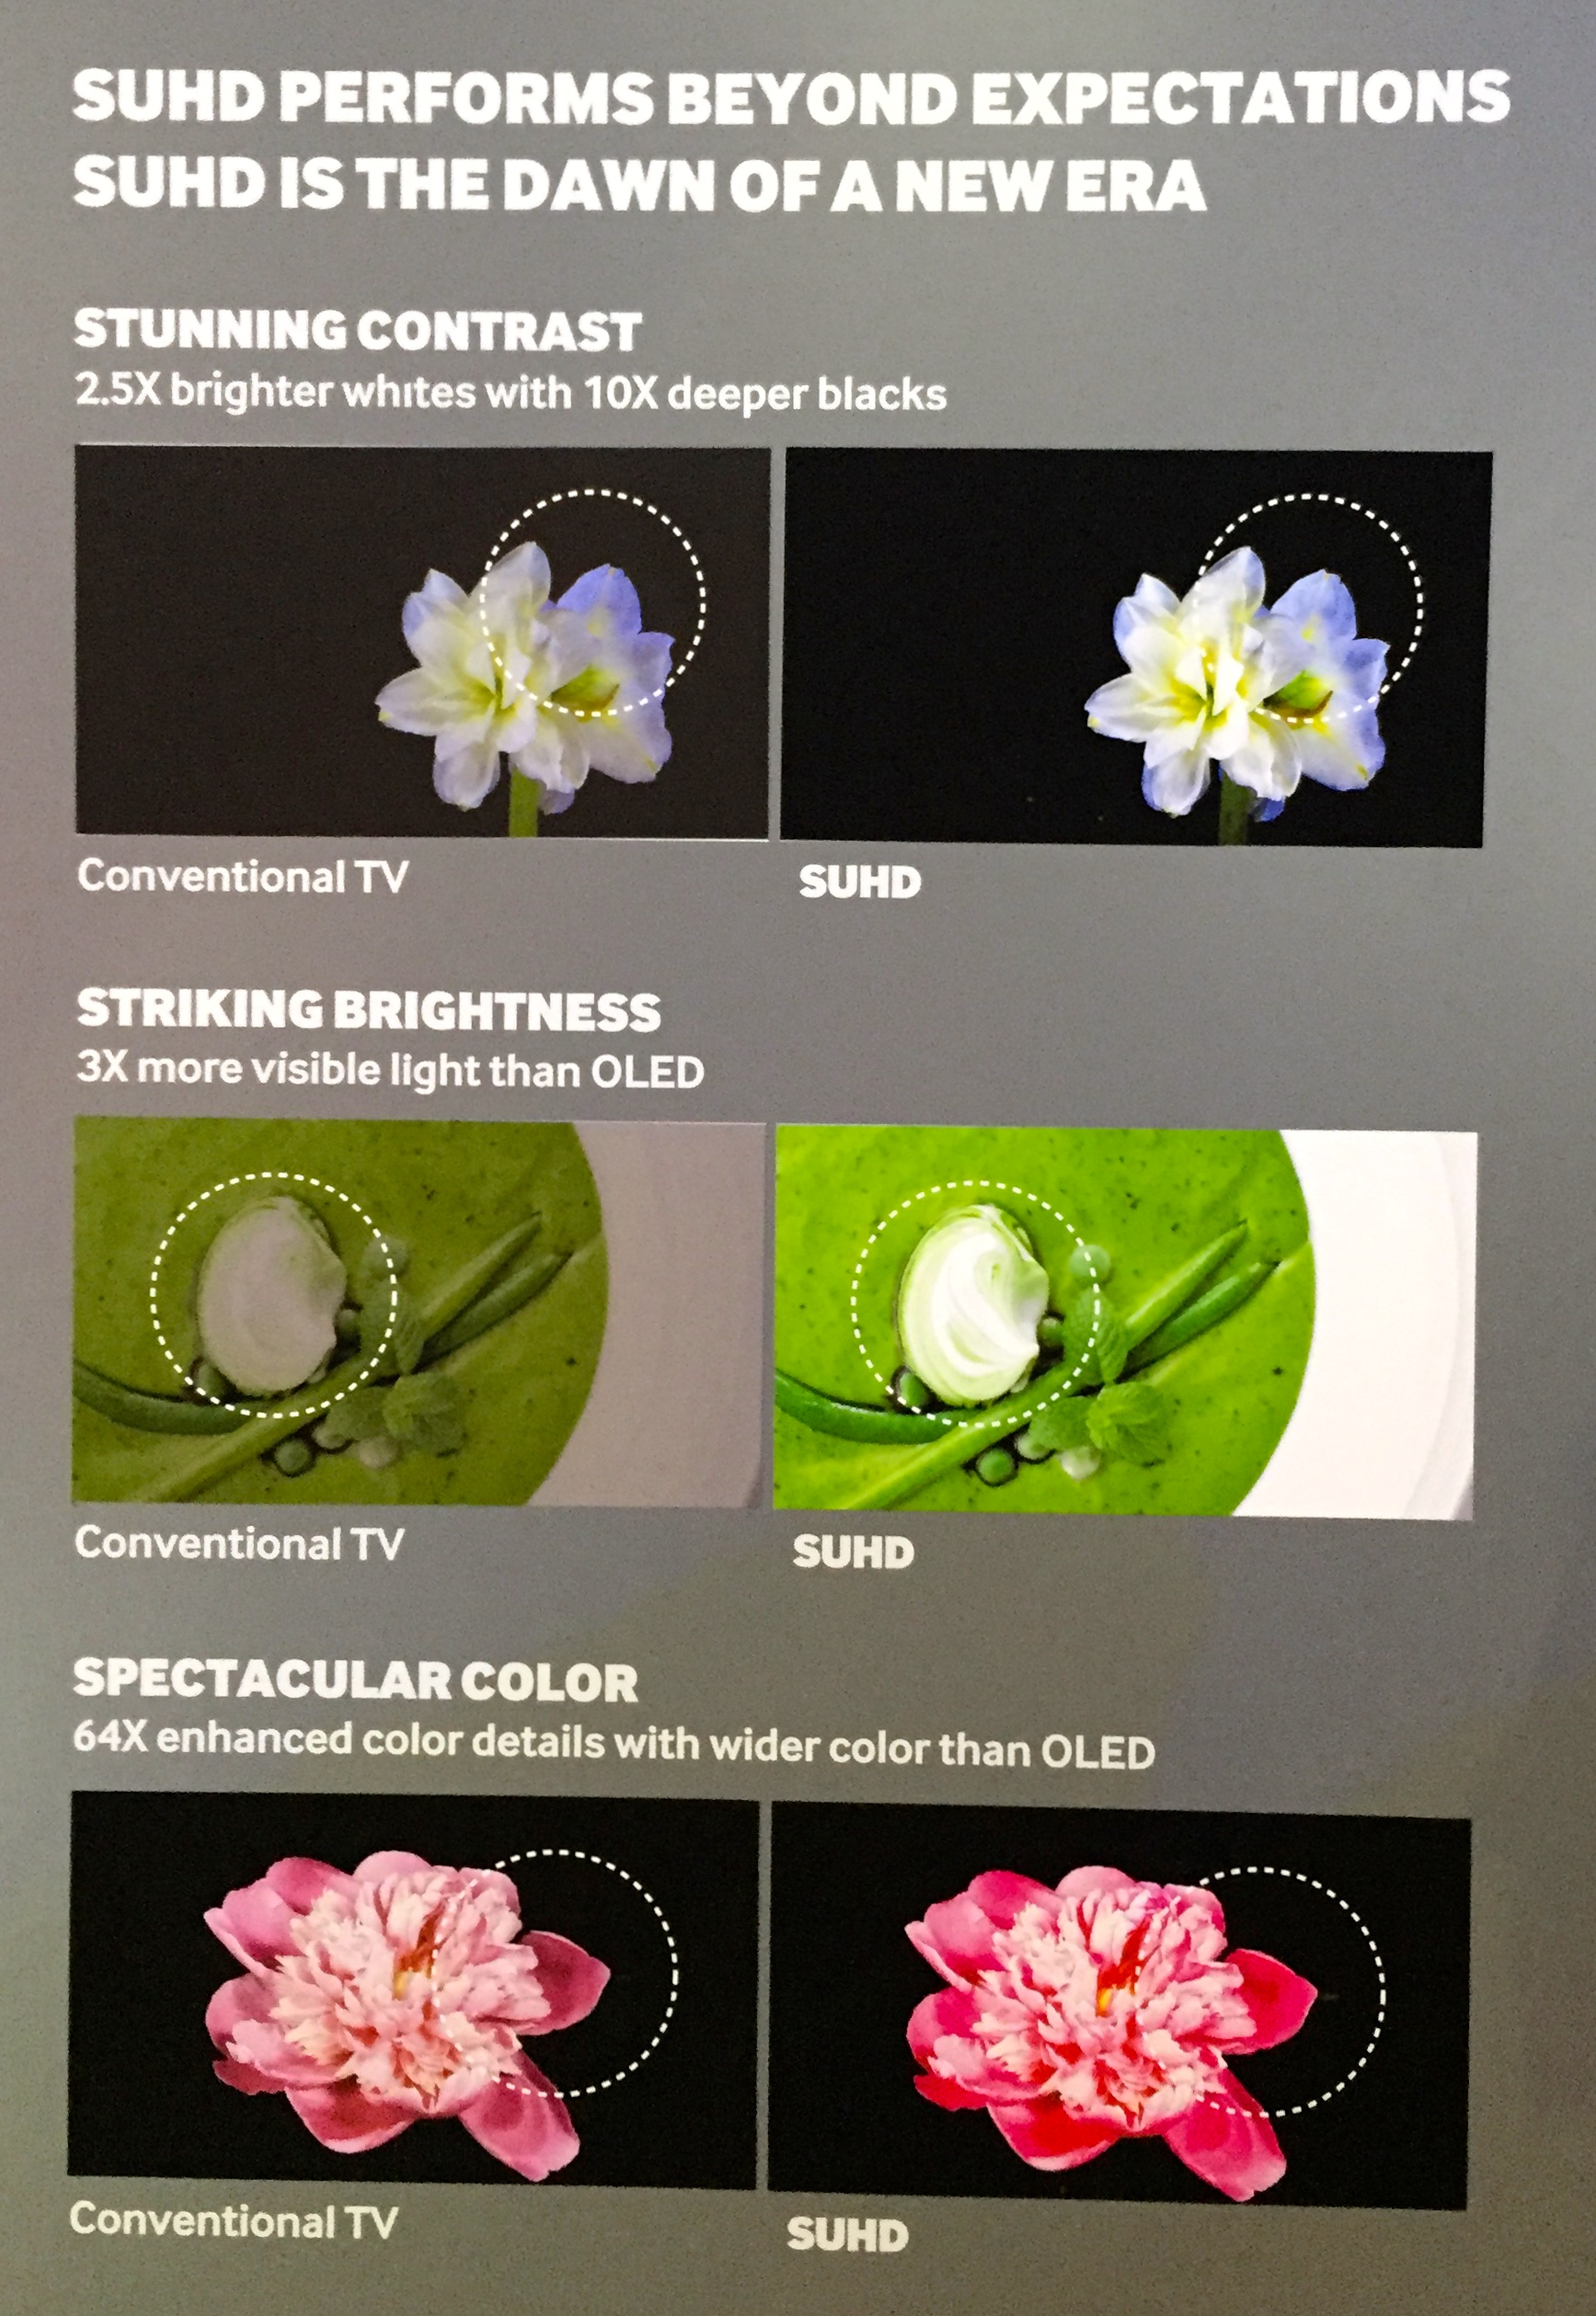 Samsung claims Quantum Dot based SUHD displays outperform OLED in brightness and color at CES 2015